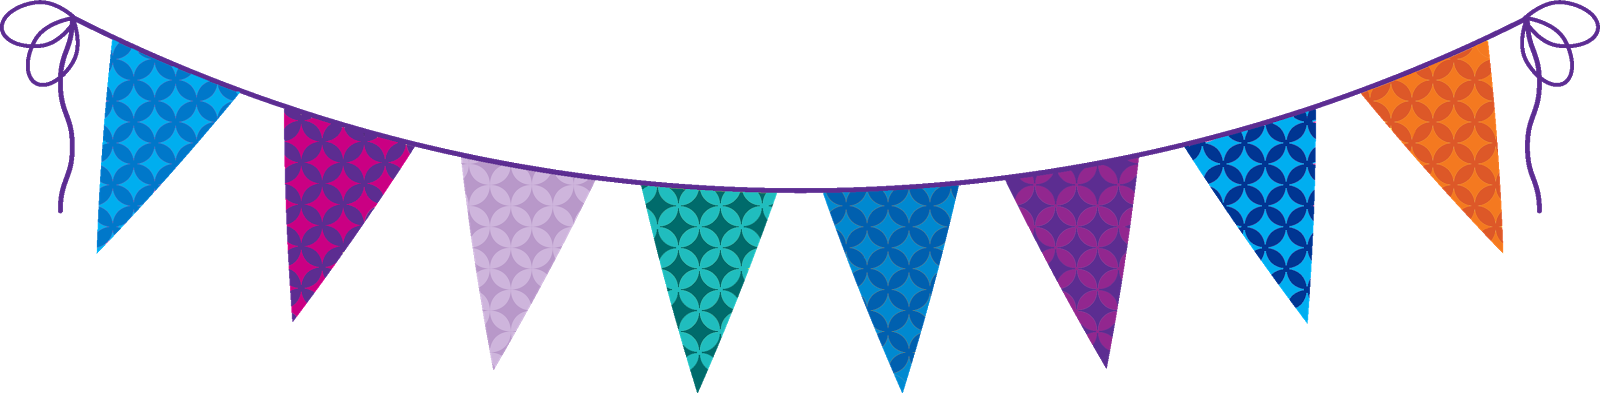 Party banners png. Birthday flag transparent images